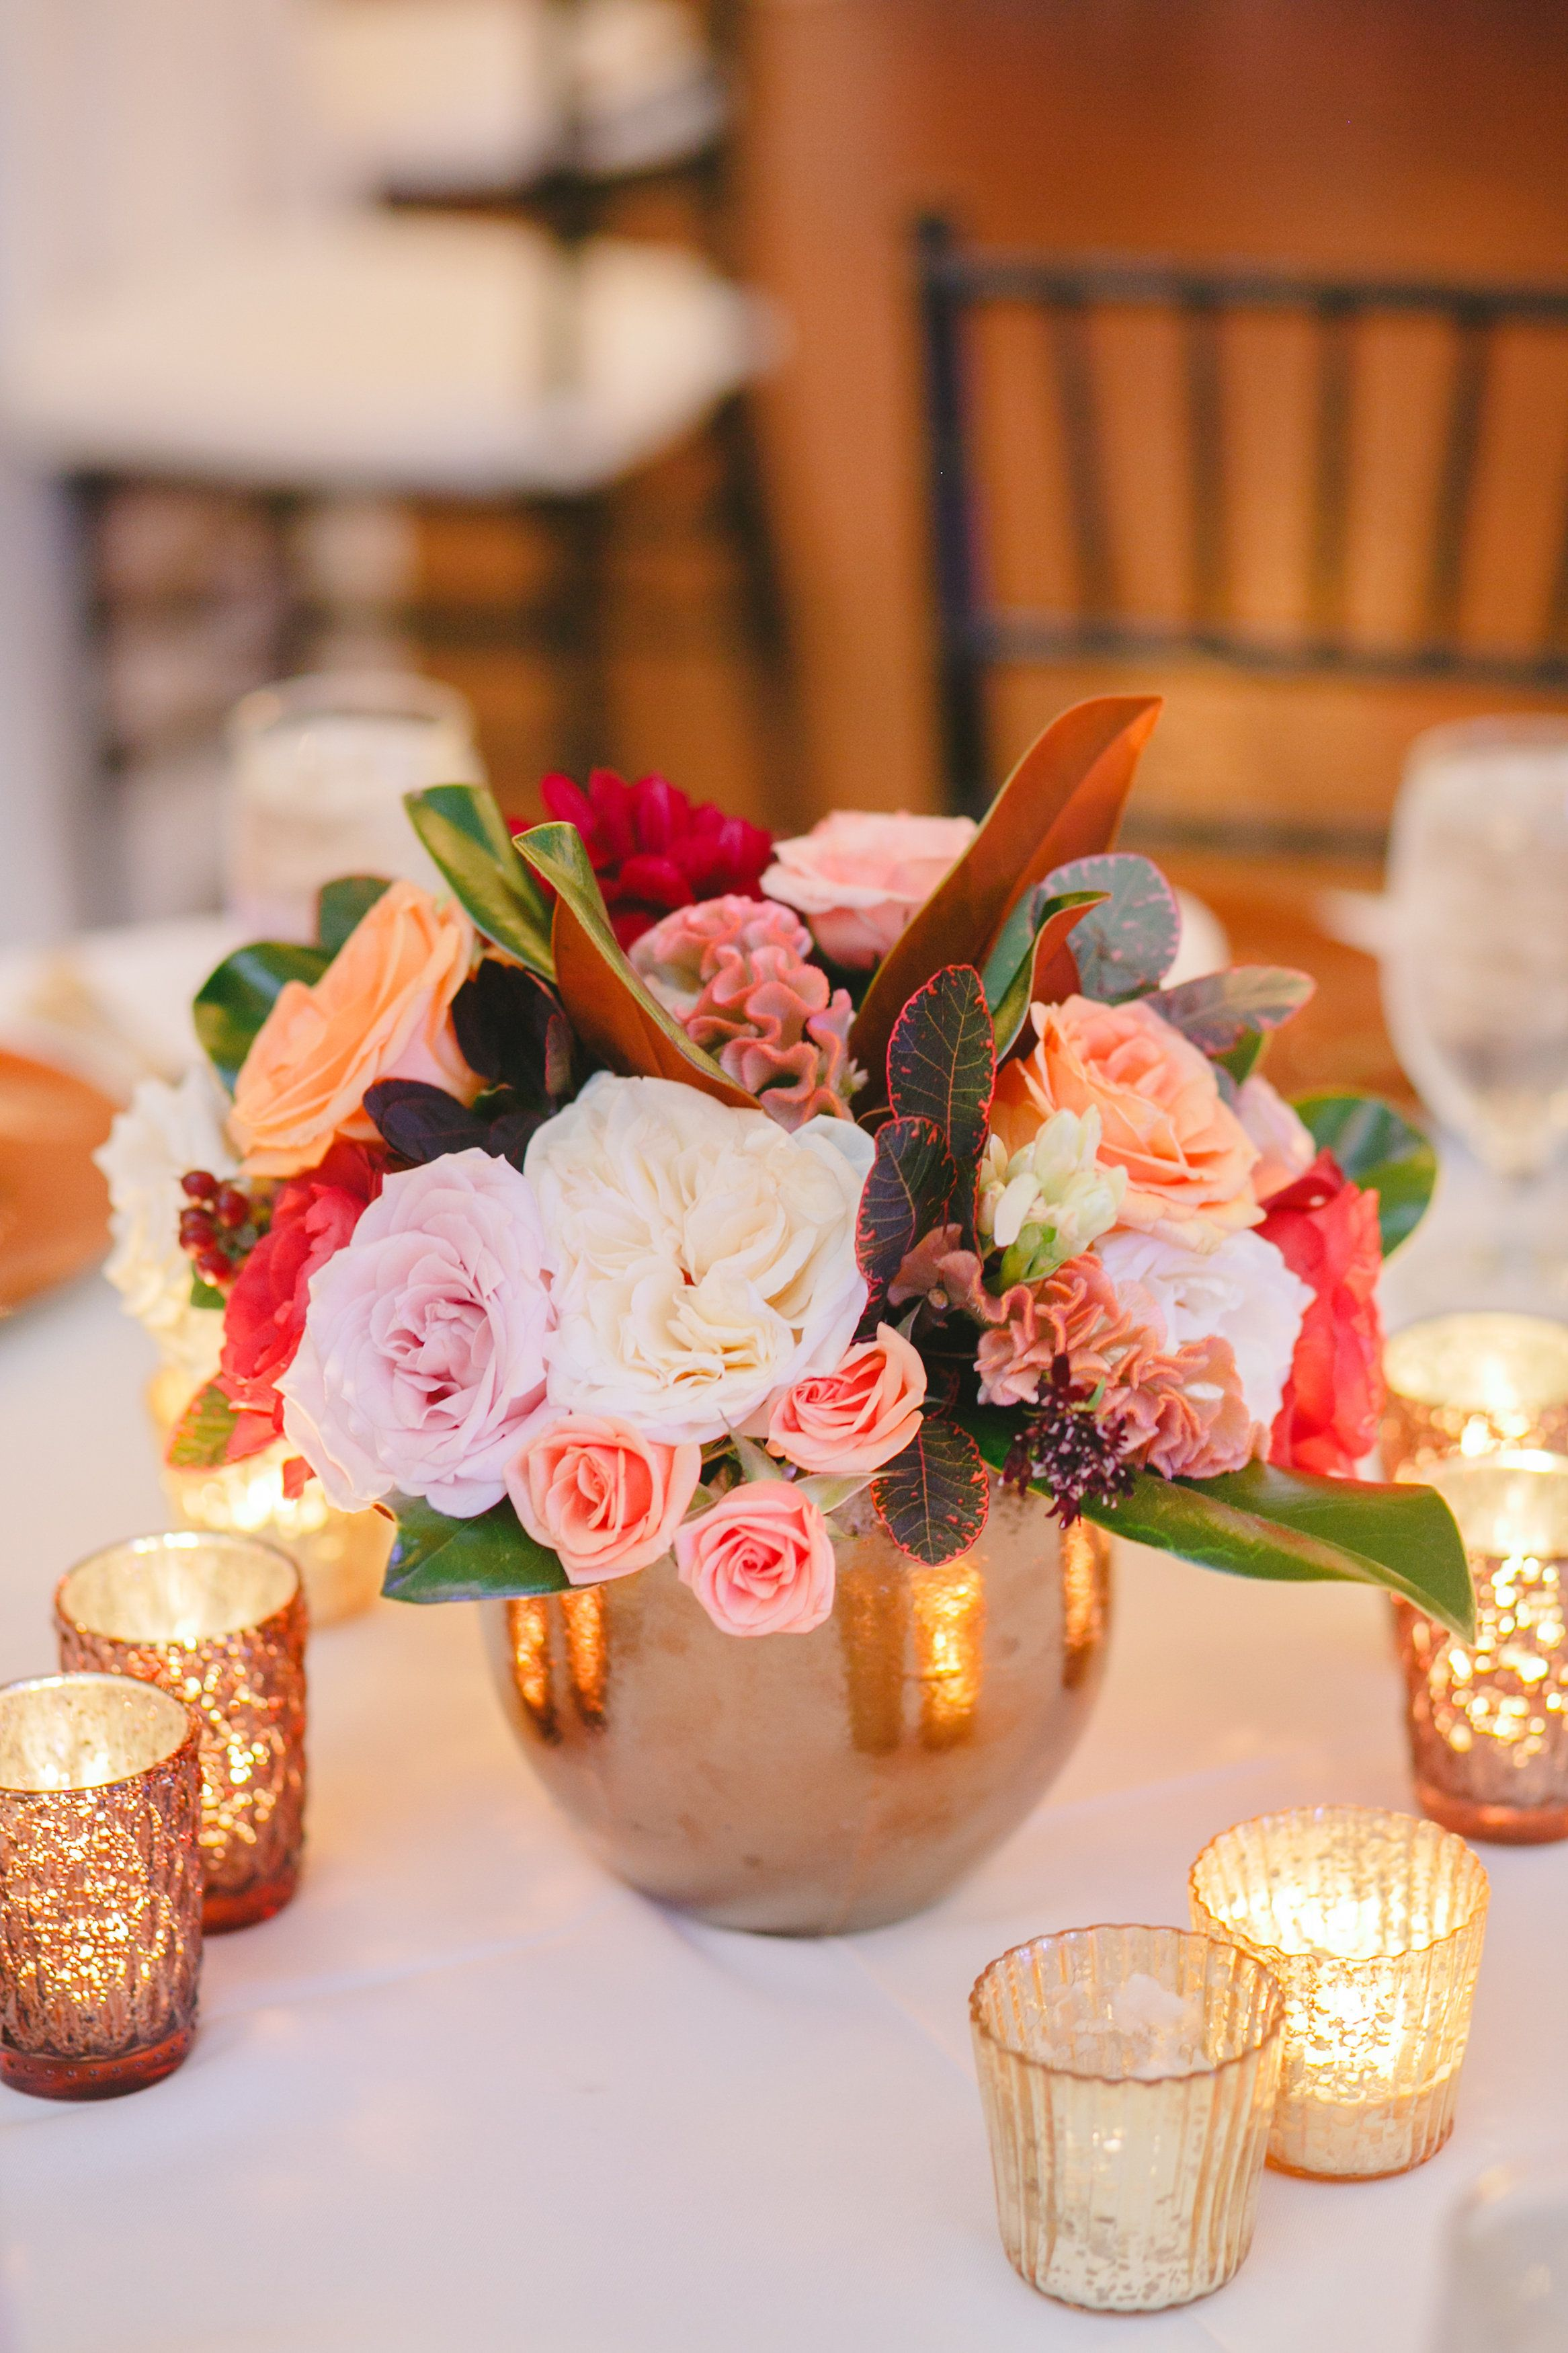 Peach blush burgundy ivory centerpiece